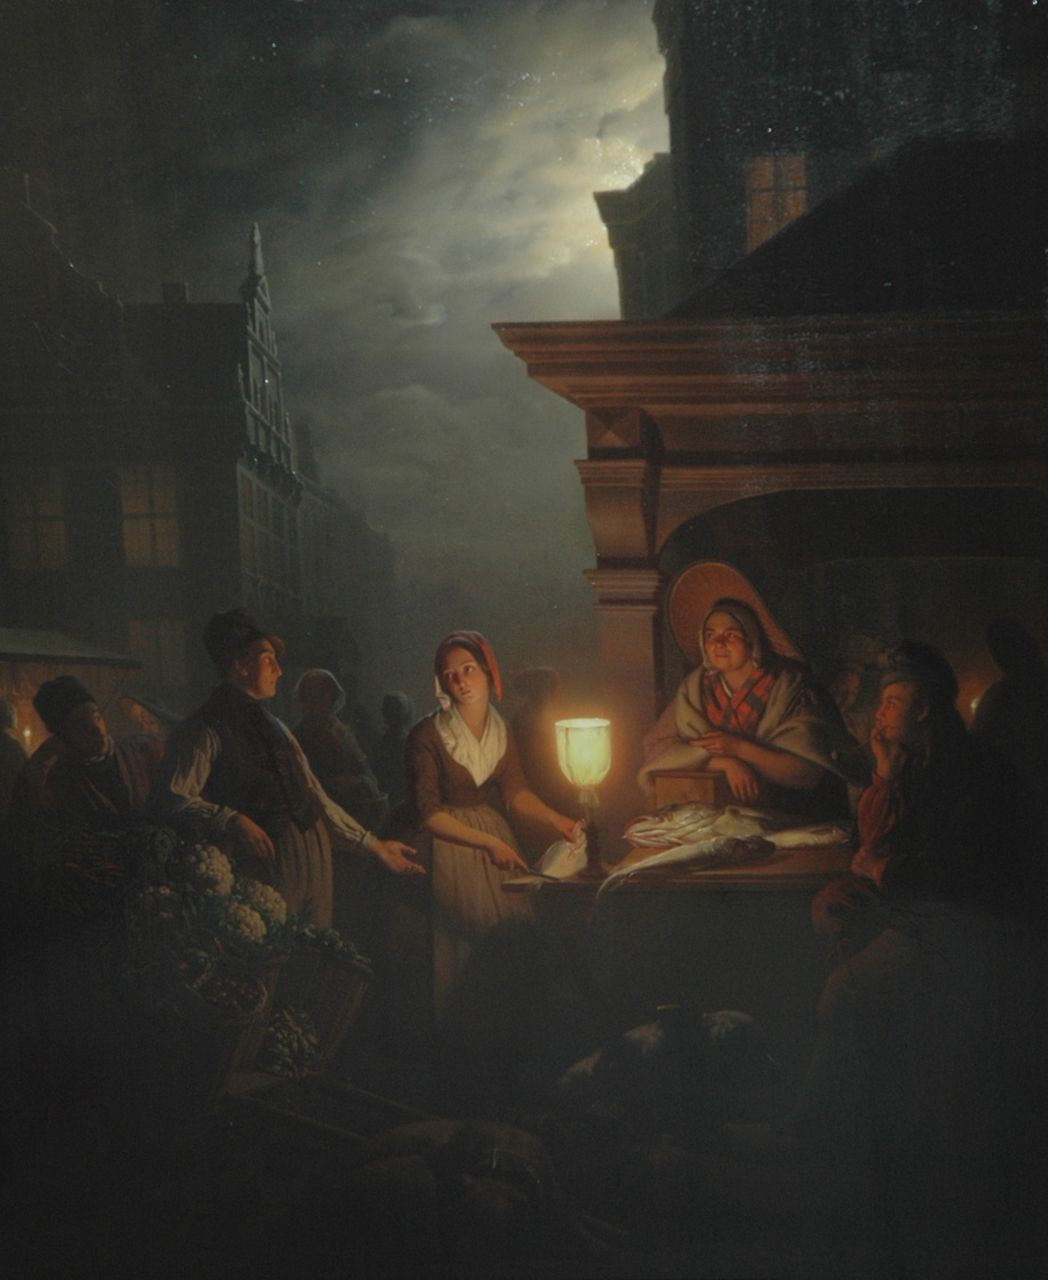 Schendel P. van | Petrus van Schendel, The fismarket at night, oil on panel 84.3 x 69.4 cm, signed l.r.